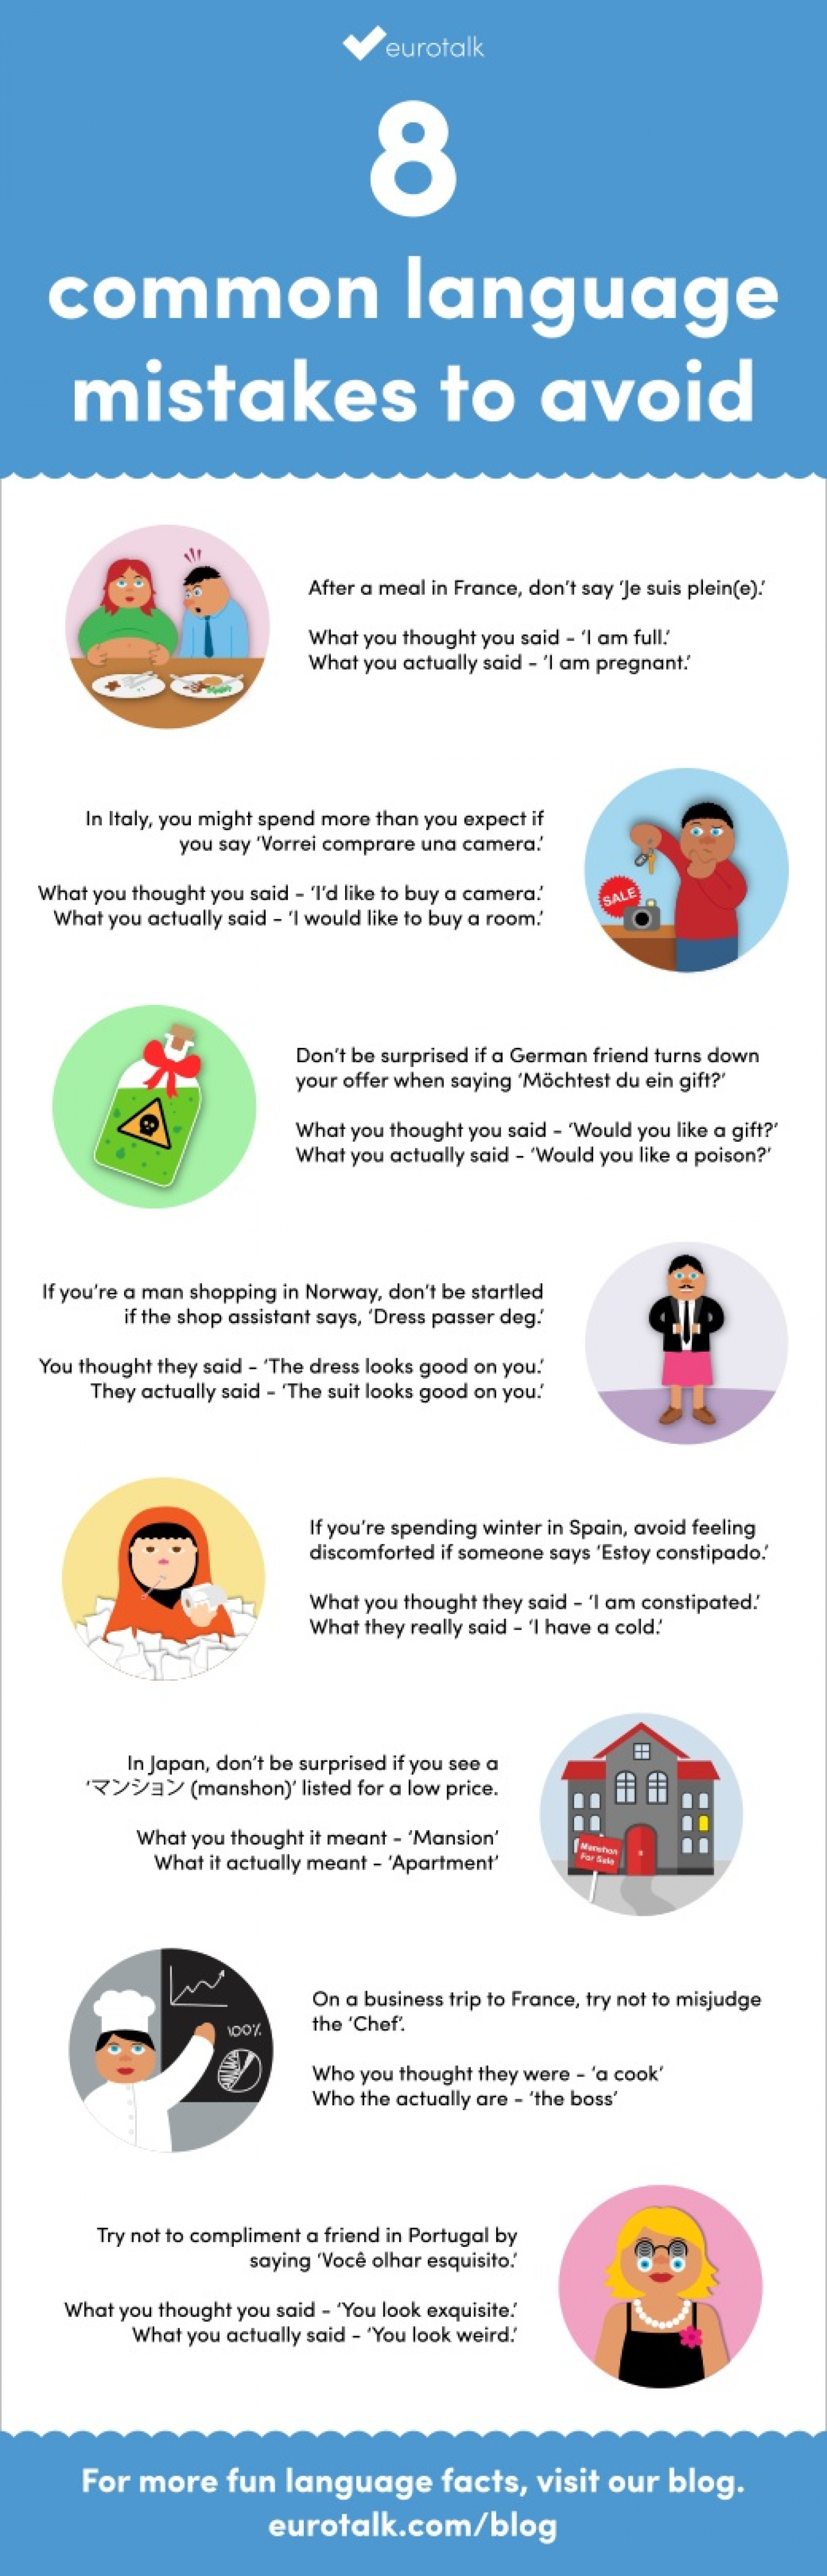 8 Common Language Mistakes to Avoid Infographic